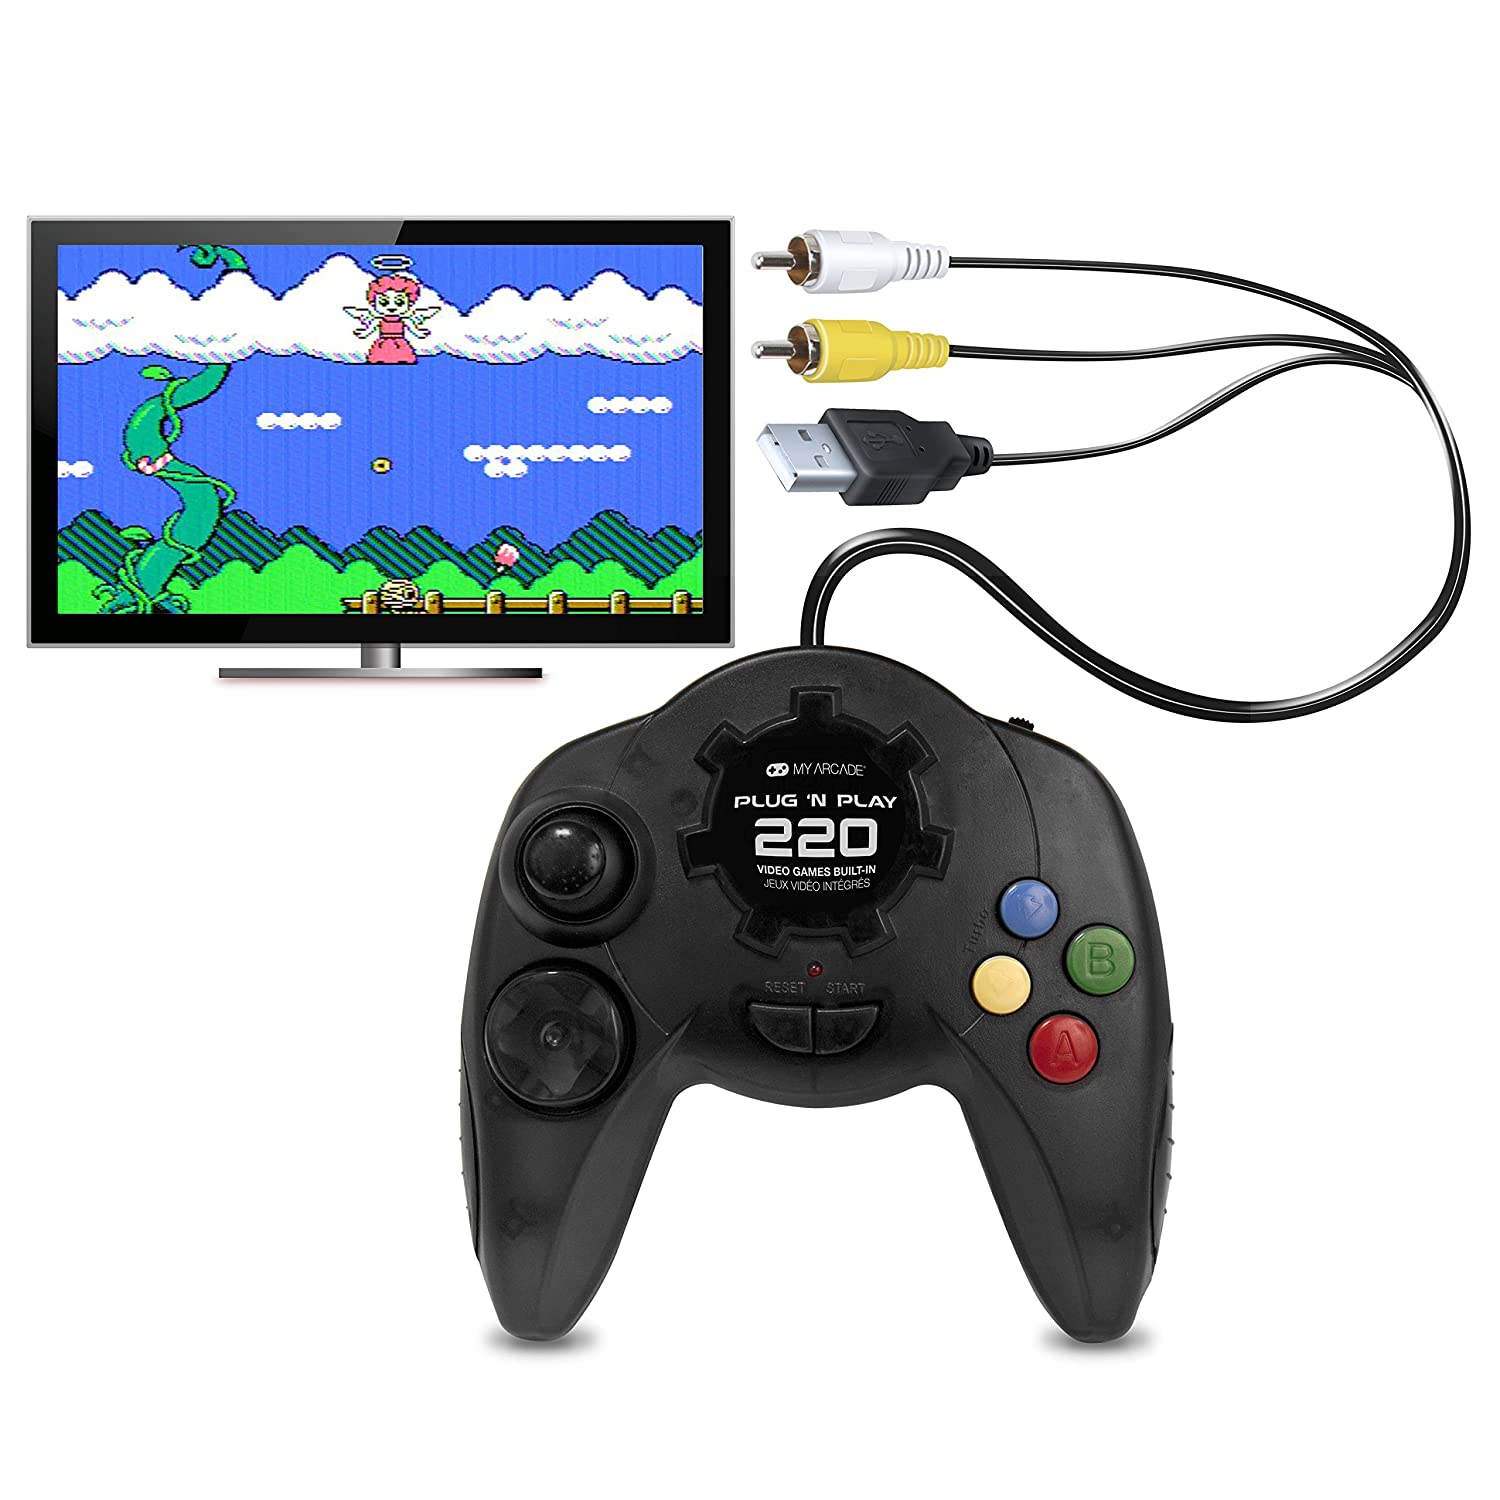 My Arcade Plug N Play TV Game Console: 220 Retro Style Games, Plugs Into TV, Battery or USB Powered, Ergonomic Controller Shape, Tactile Buttons: Video Games